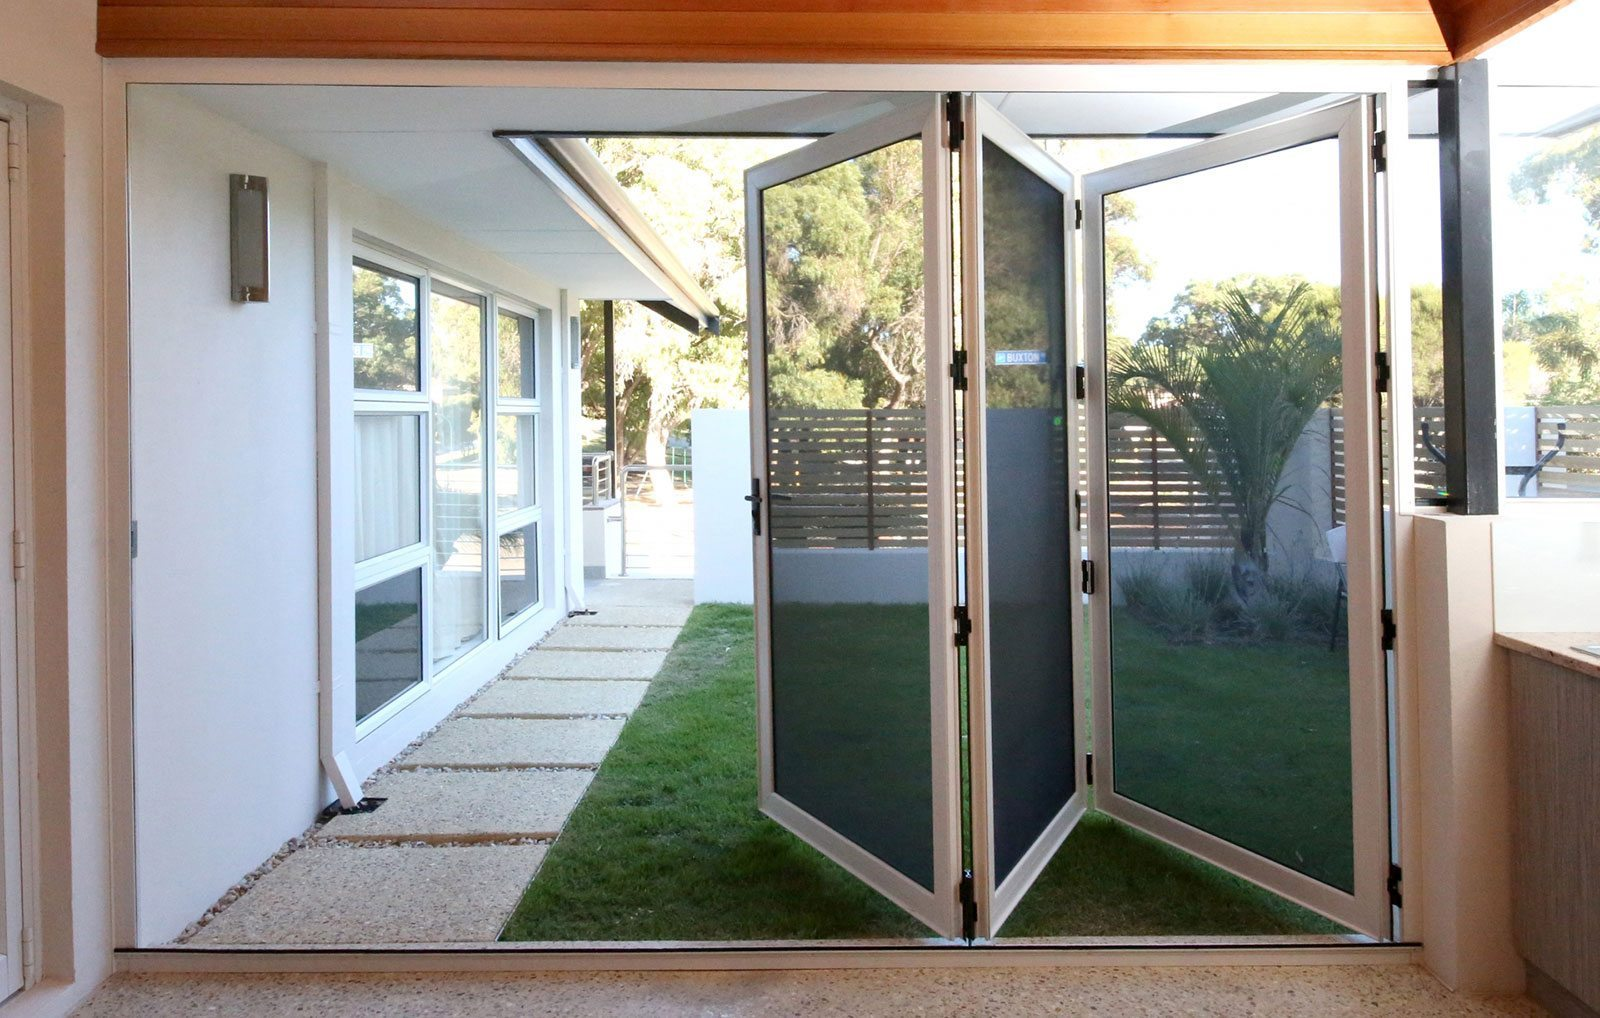 Le Meilleur Security Screens For Doors And Windows Shade And Shutter Ce Mois Ci